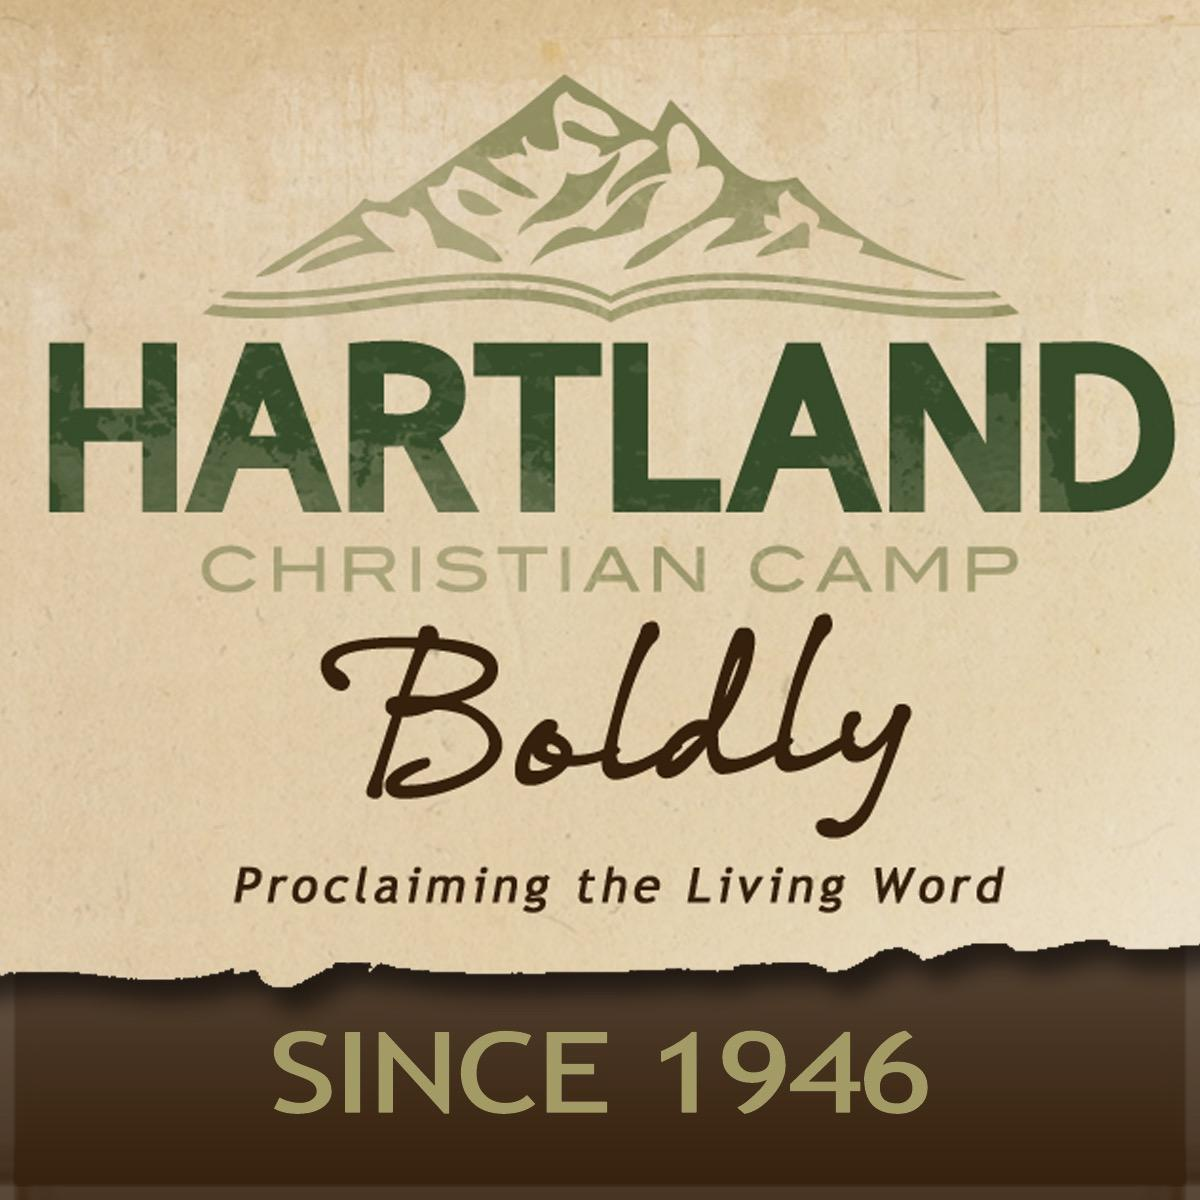 Hartland Christian Camp - Hartland is a non-denominational Christian Camp and Conference Center located in the heart of the California Sierras. Established in 1946, Hartland Christian Camp has been built on a foundation of ministry in the name of Jesus Christ and exists for His Glory.